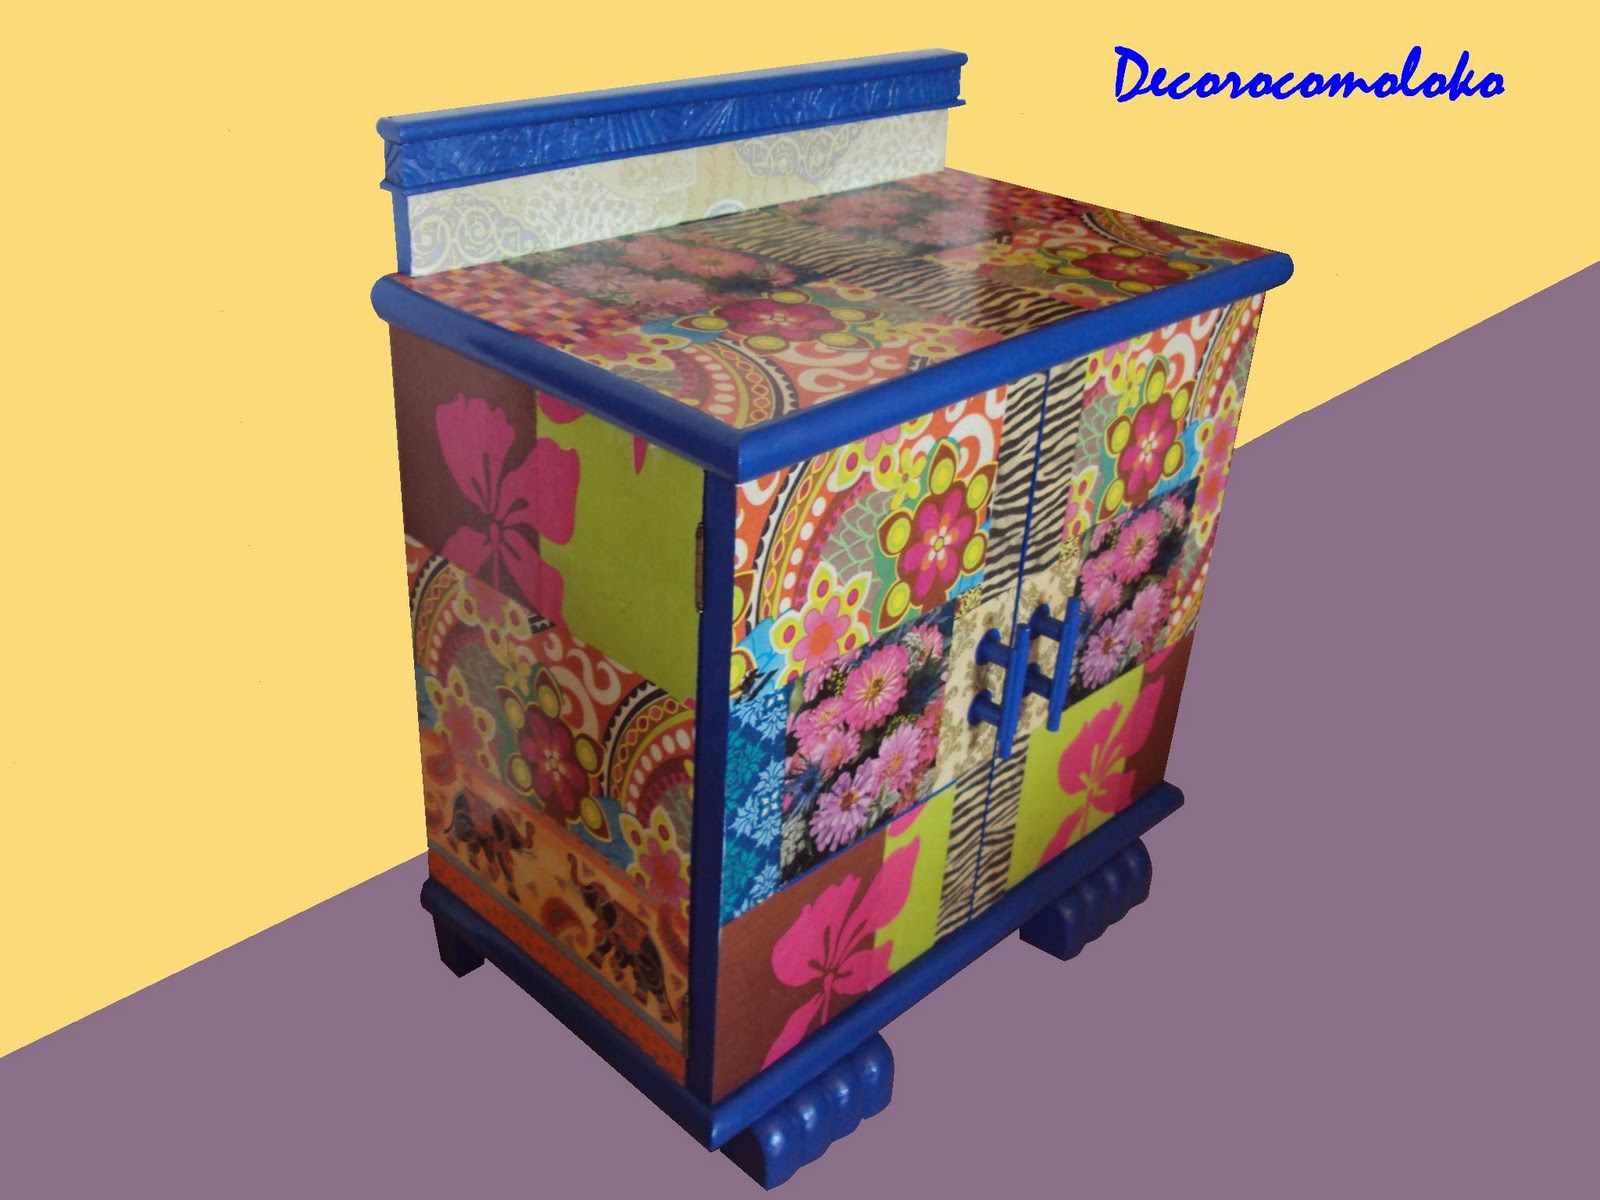 Decoupage Mueble Decorocomoloko Decorar Un Mueble Con Decoupage